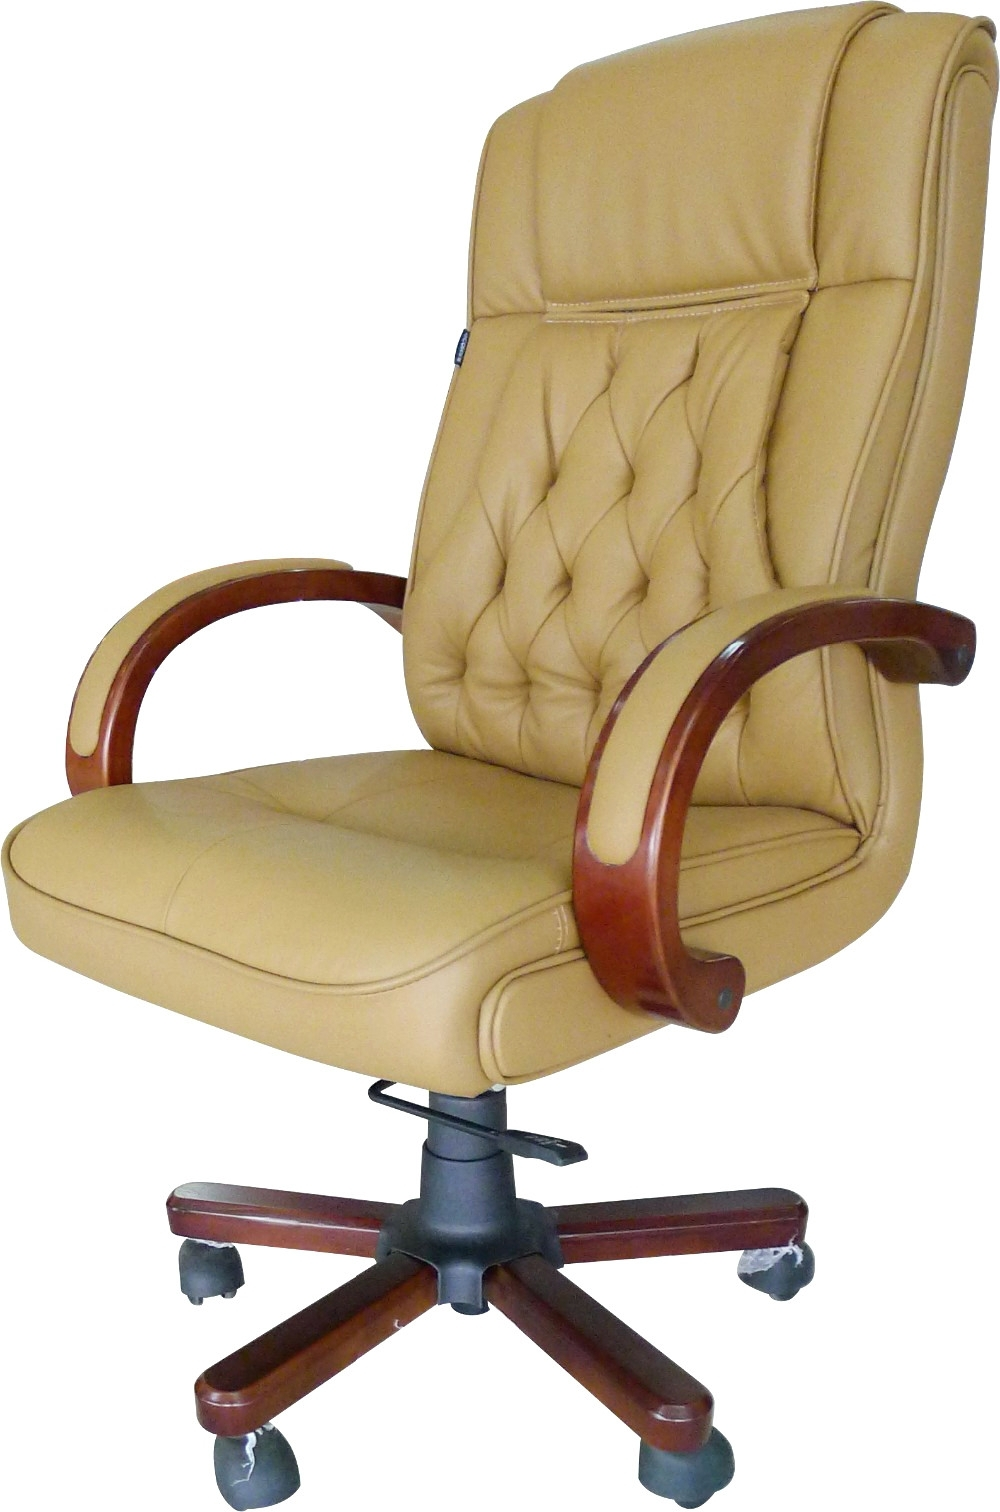 Well Liked Chaise Lounge Computer Chair • Lounge Chairs Ideas With Chaise Lounge Computer Chairs (View 5 of 15)